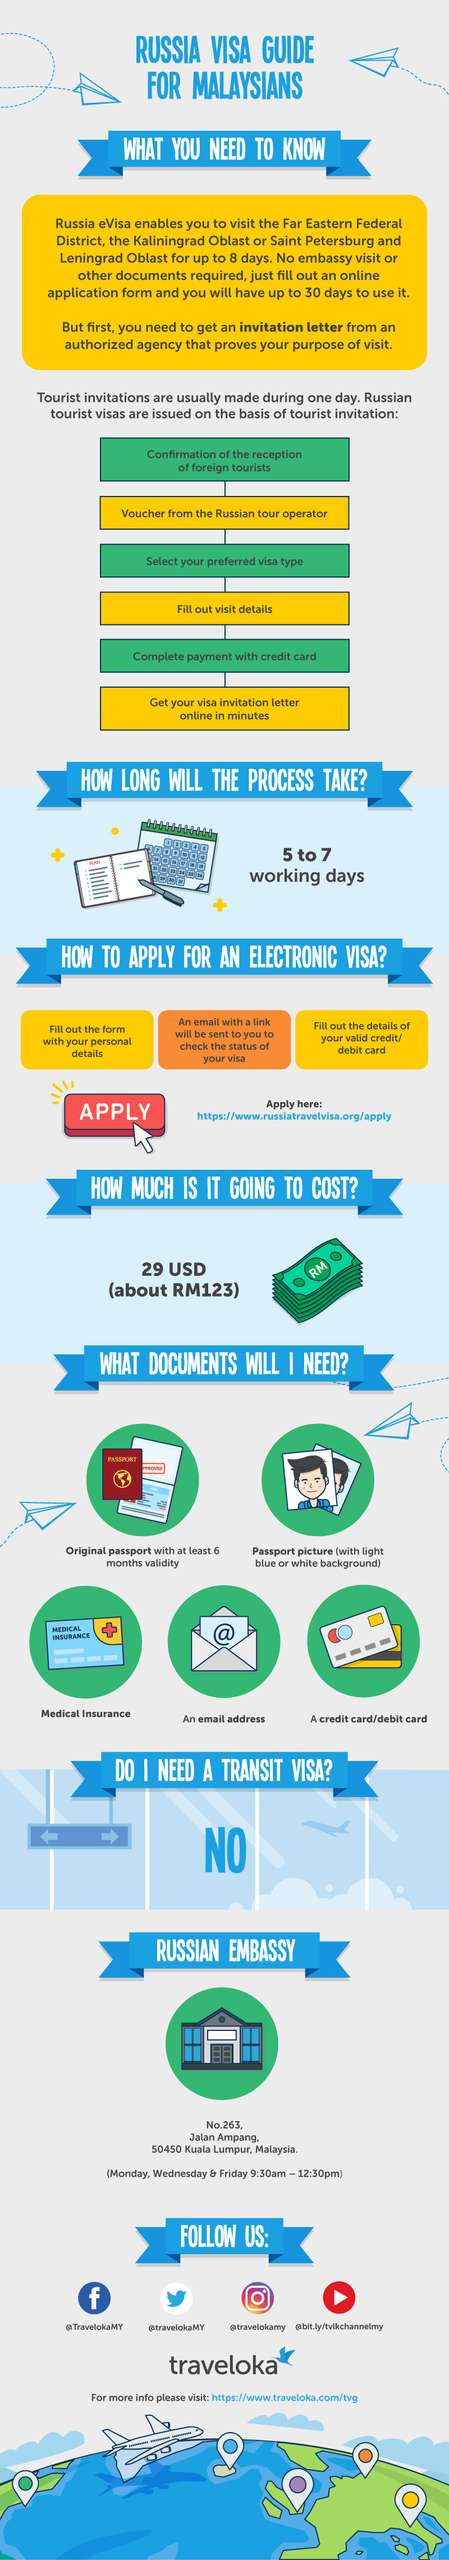 Russia Visa Requirements for Malaysians